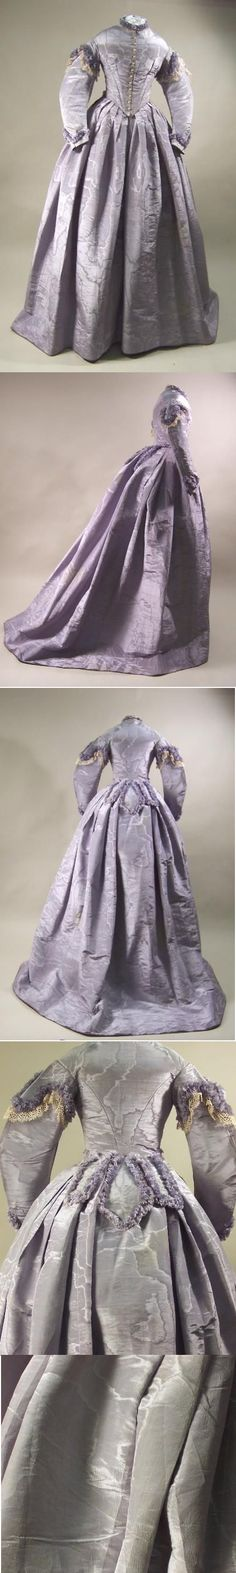 Manchester Galleries English lavender silk moire, 1865. Was used as a wedding dress.